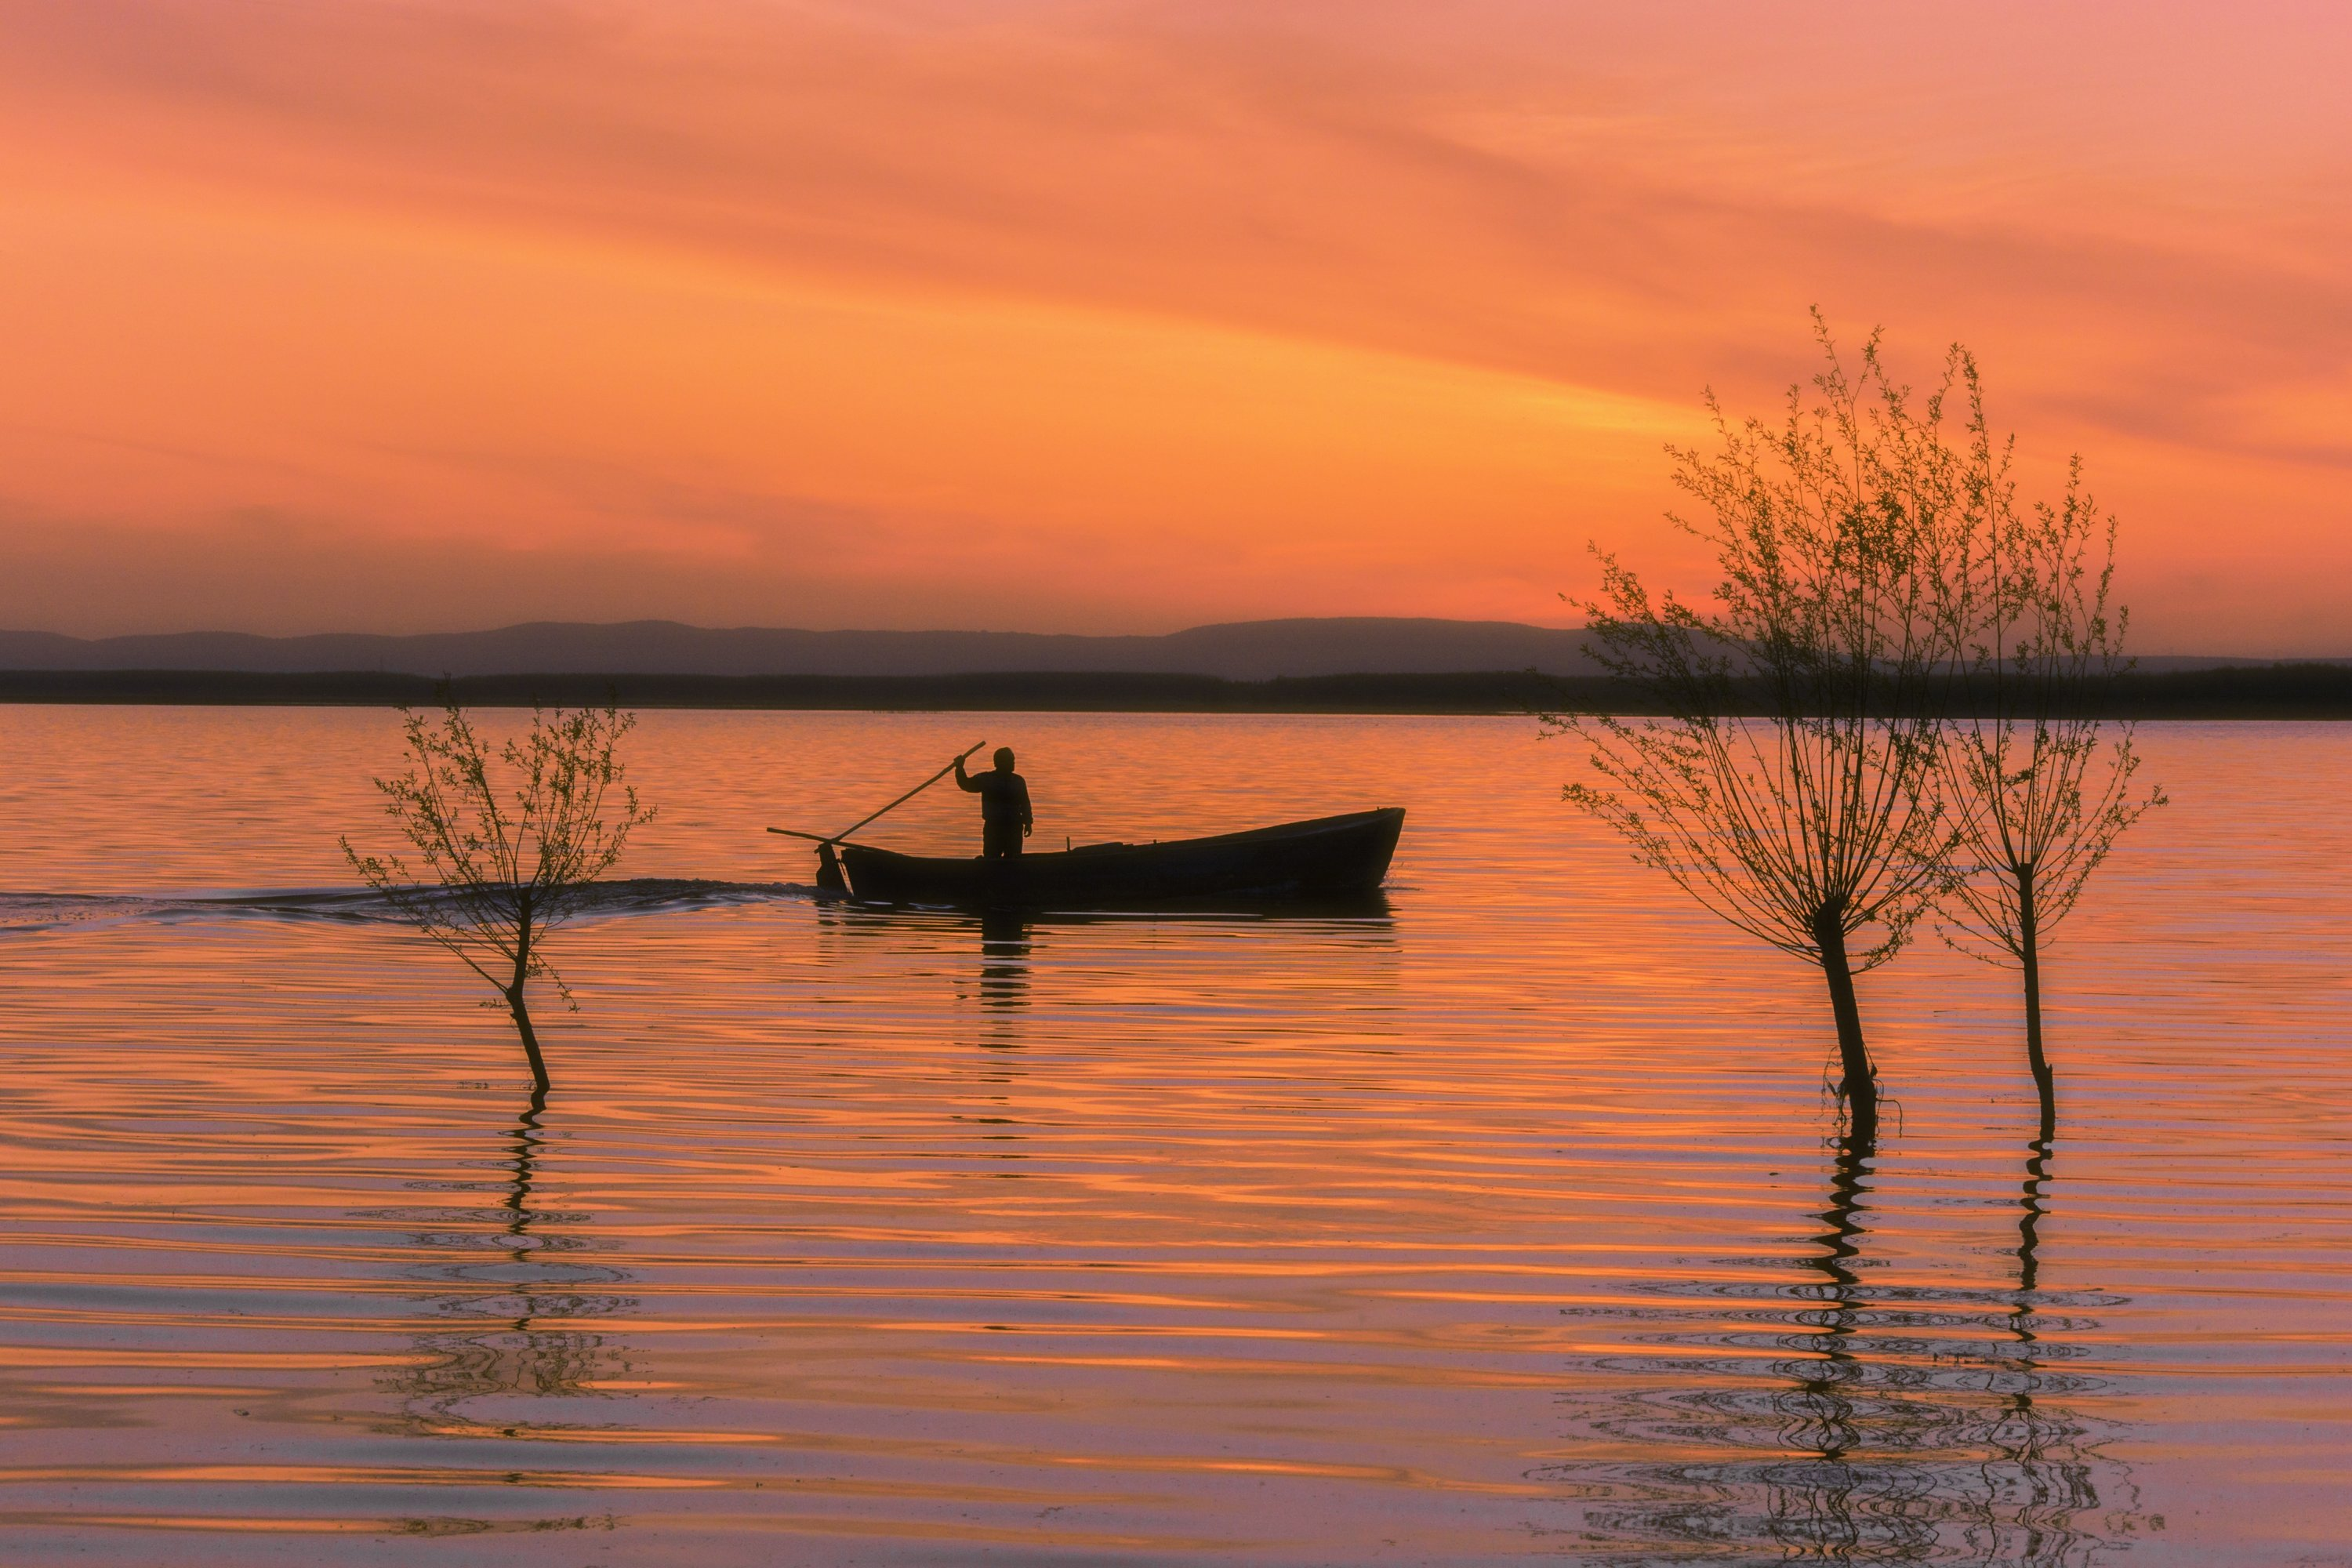 Take some amazing sunset photos at Lake Işıklı while enjoying a boat ride. (AA Photo)